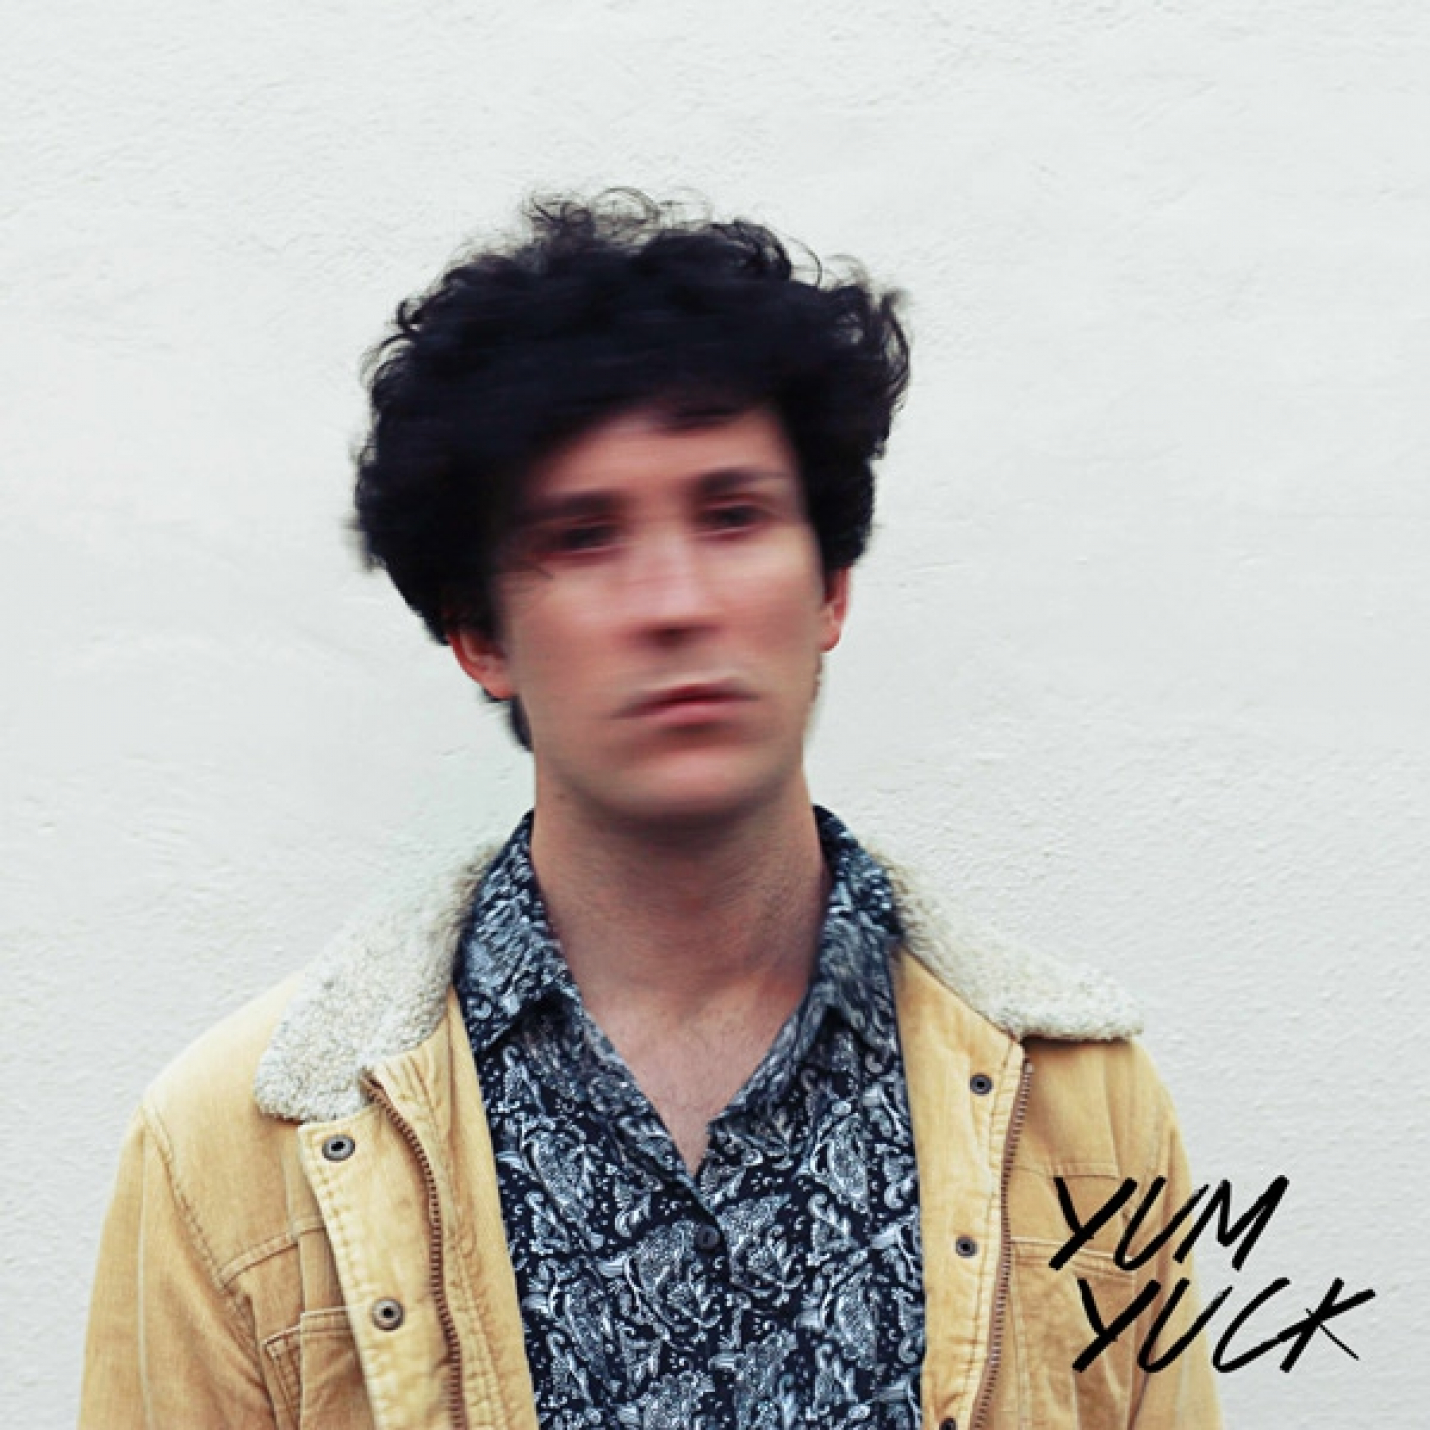 YUM YUCK Releases Debut Song ICICLES Via Indie Shuffle